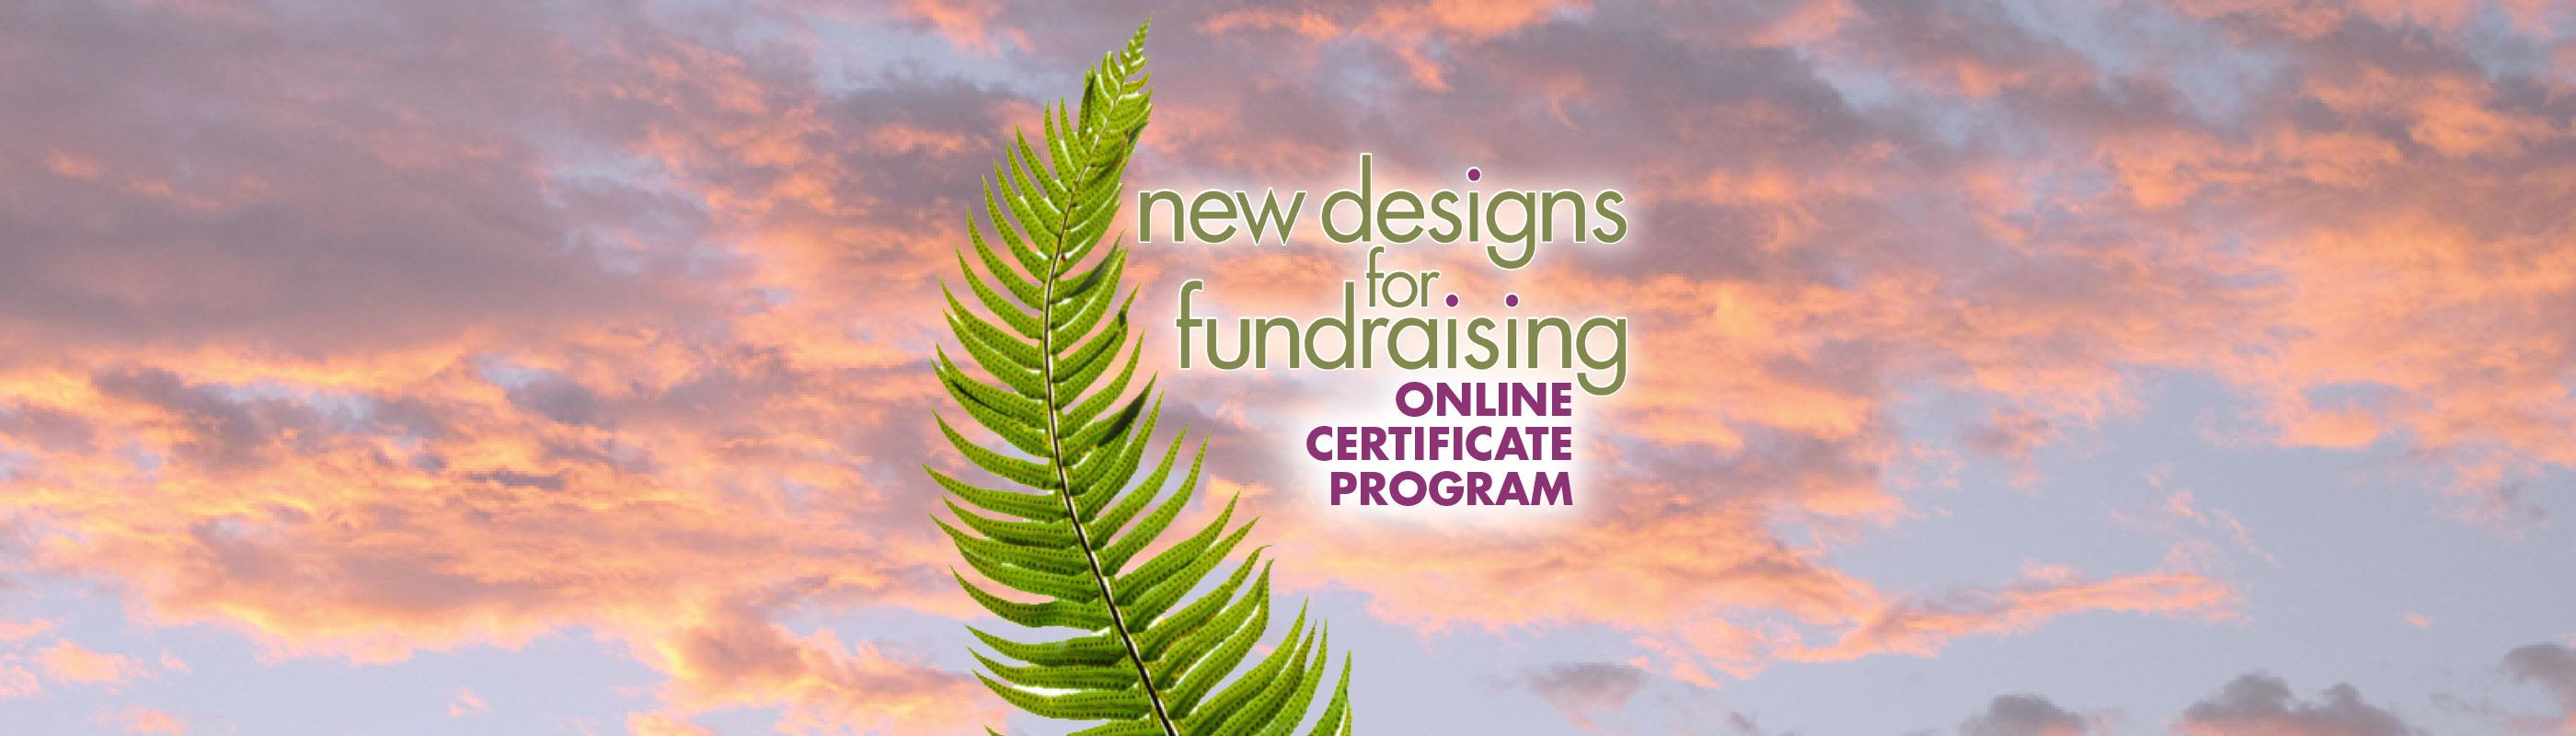 New Designs for Fundraising Online Certificate Program